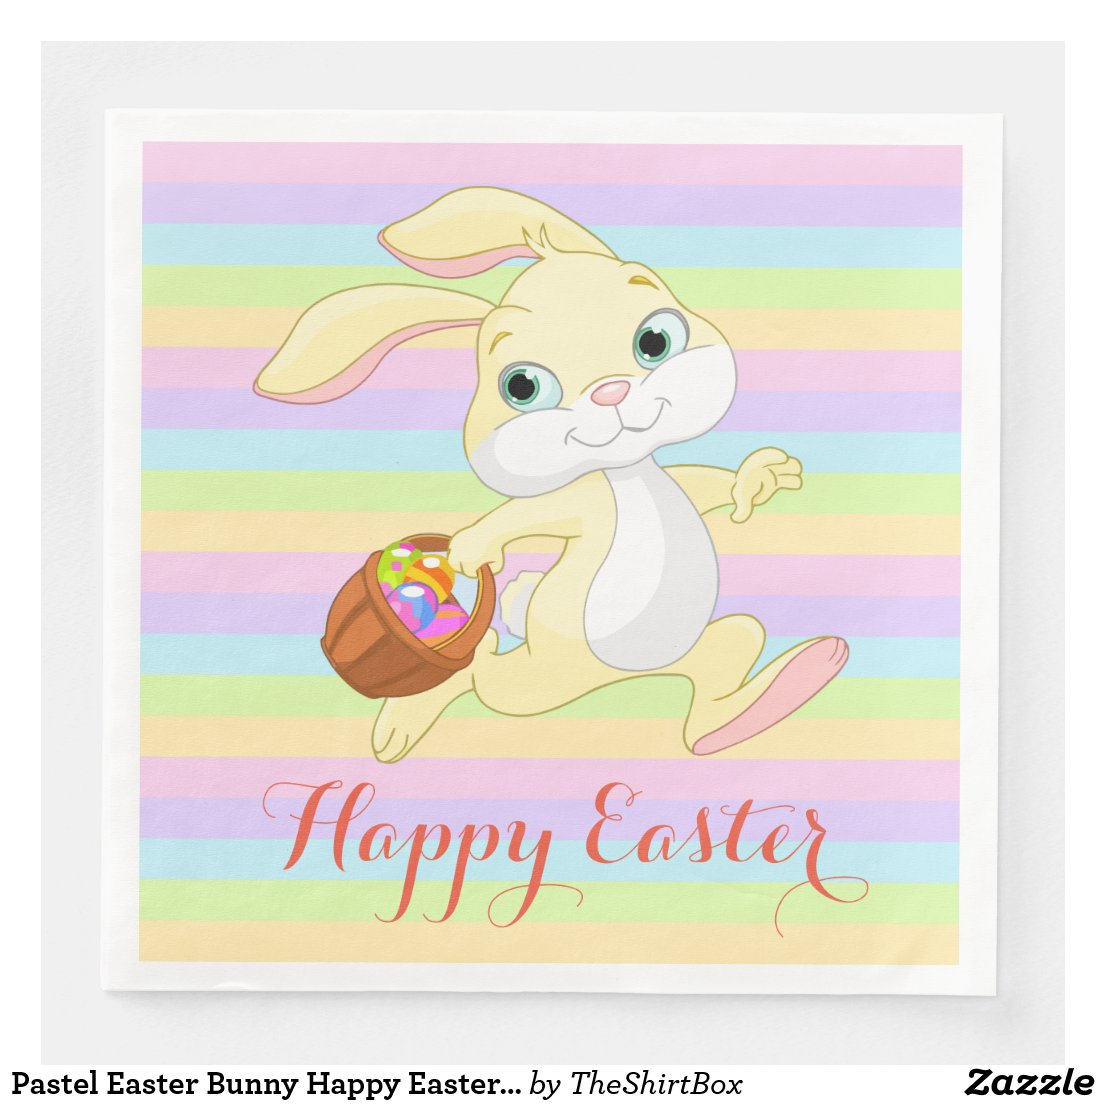 Pastel Easter Bunny Happy Easter Napkins